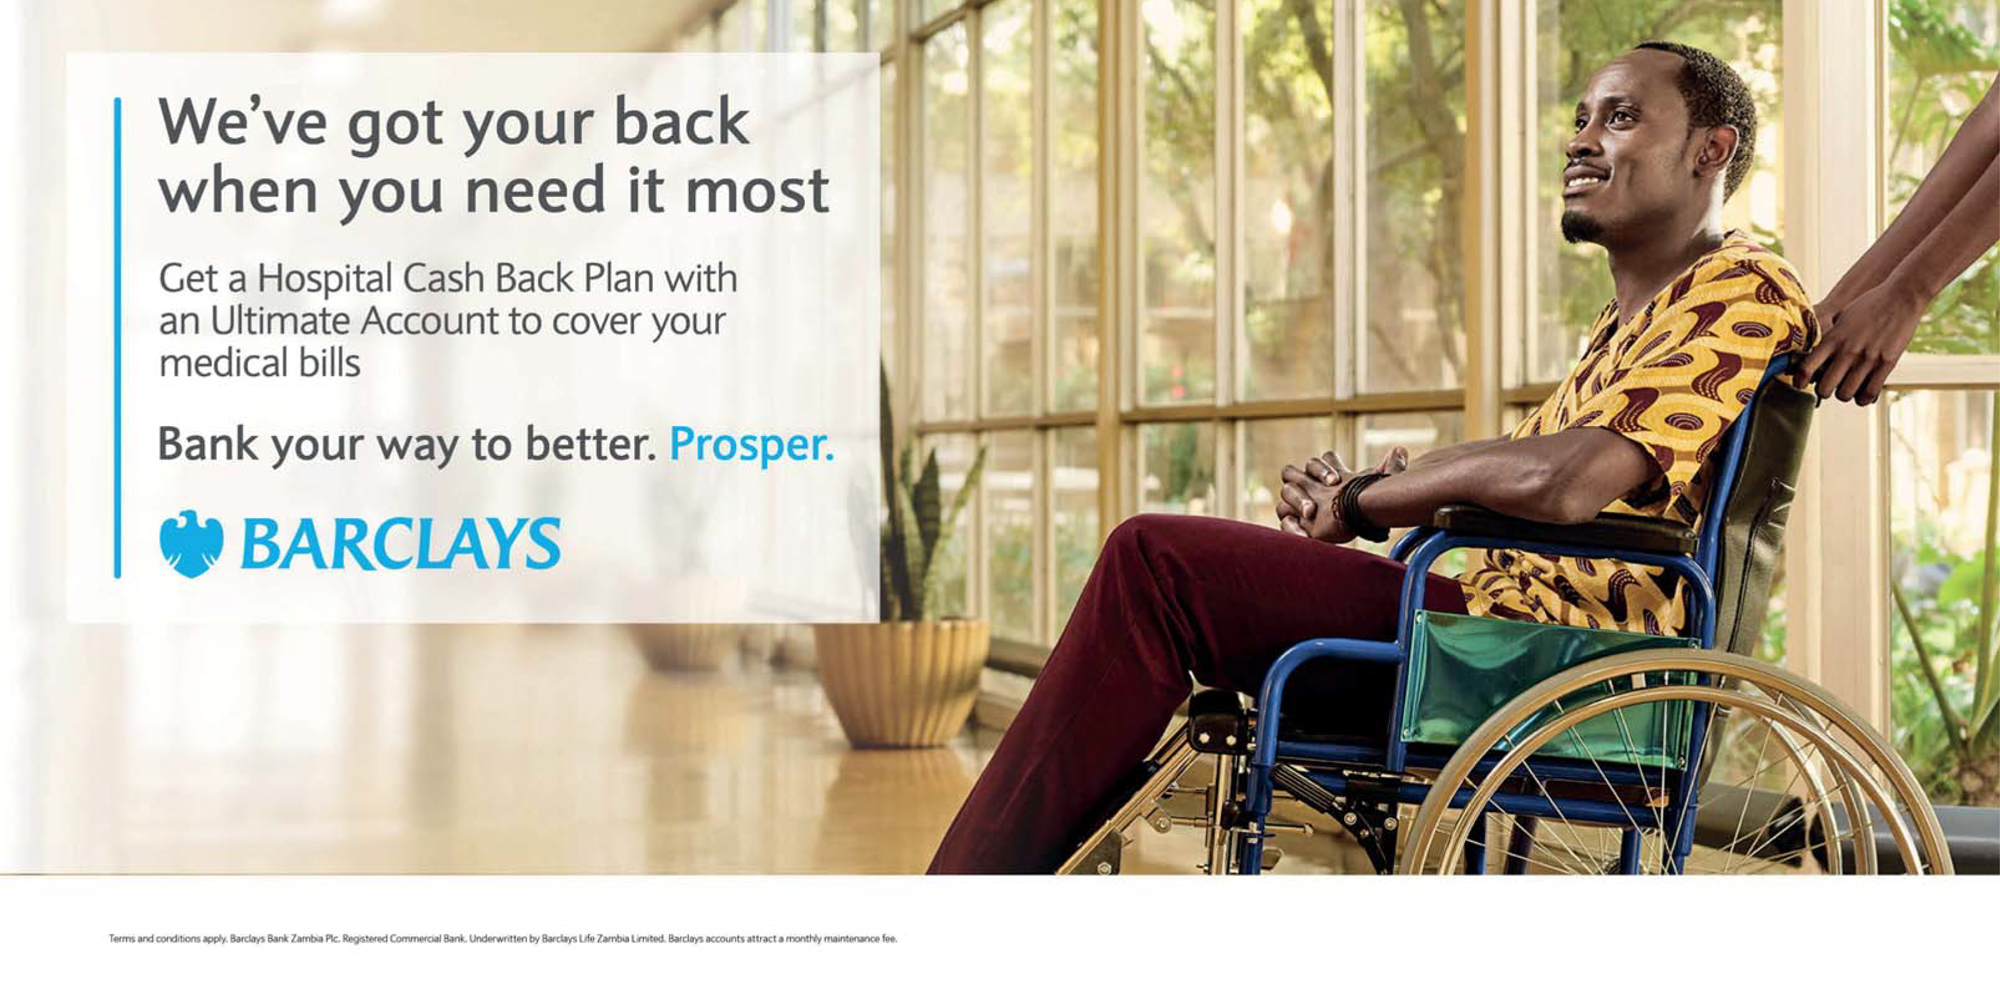 Barclays Personal Banking Campaign Toolkit 26 APRIL-74.jpg